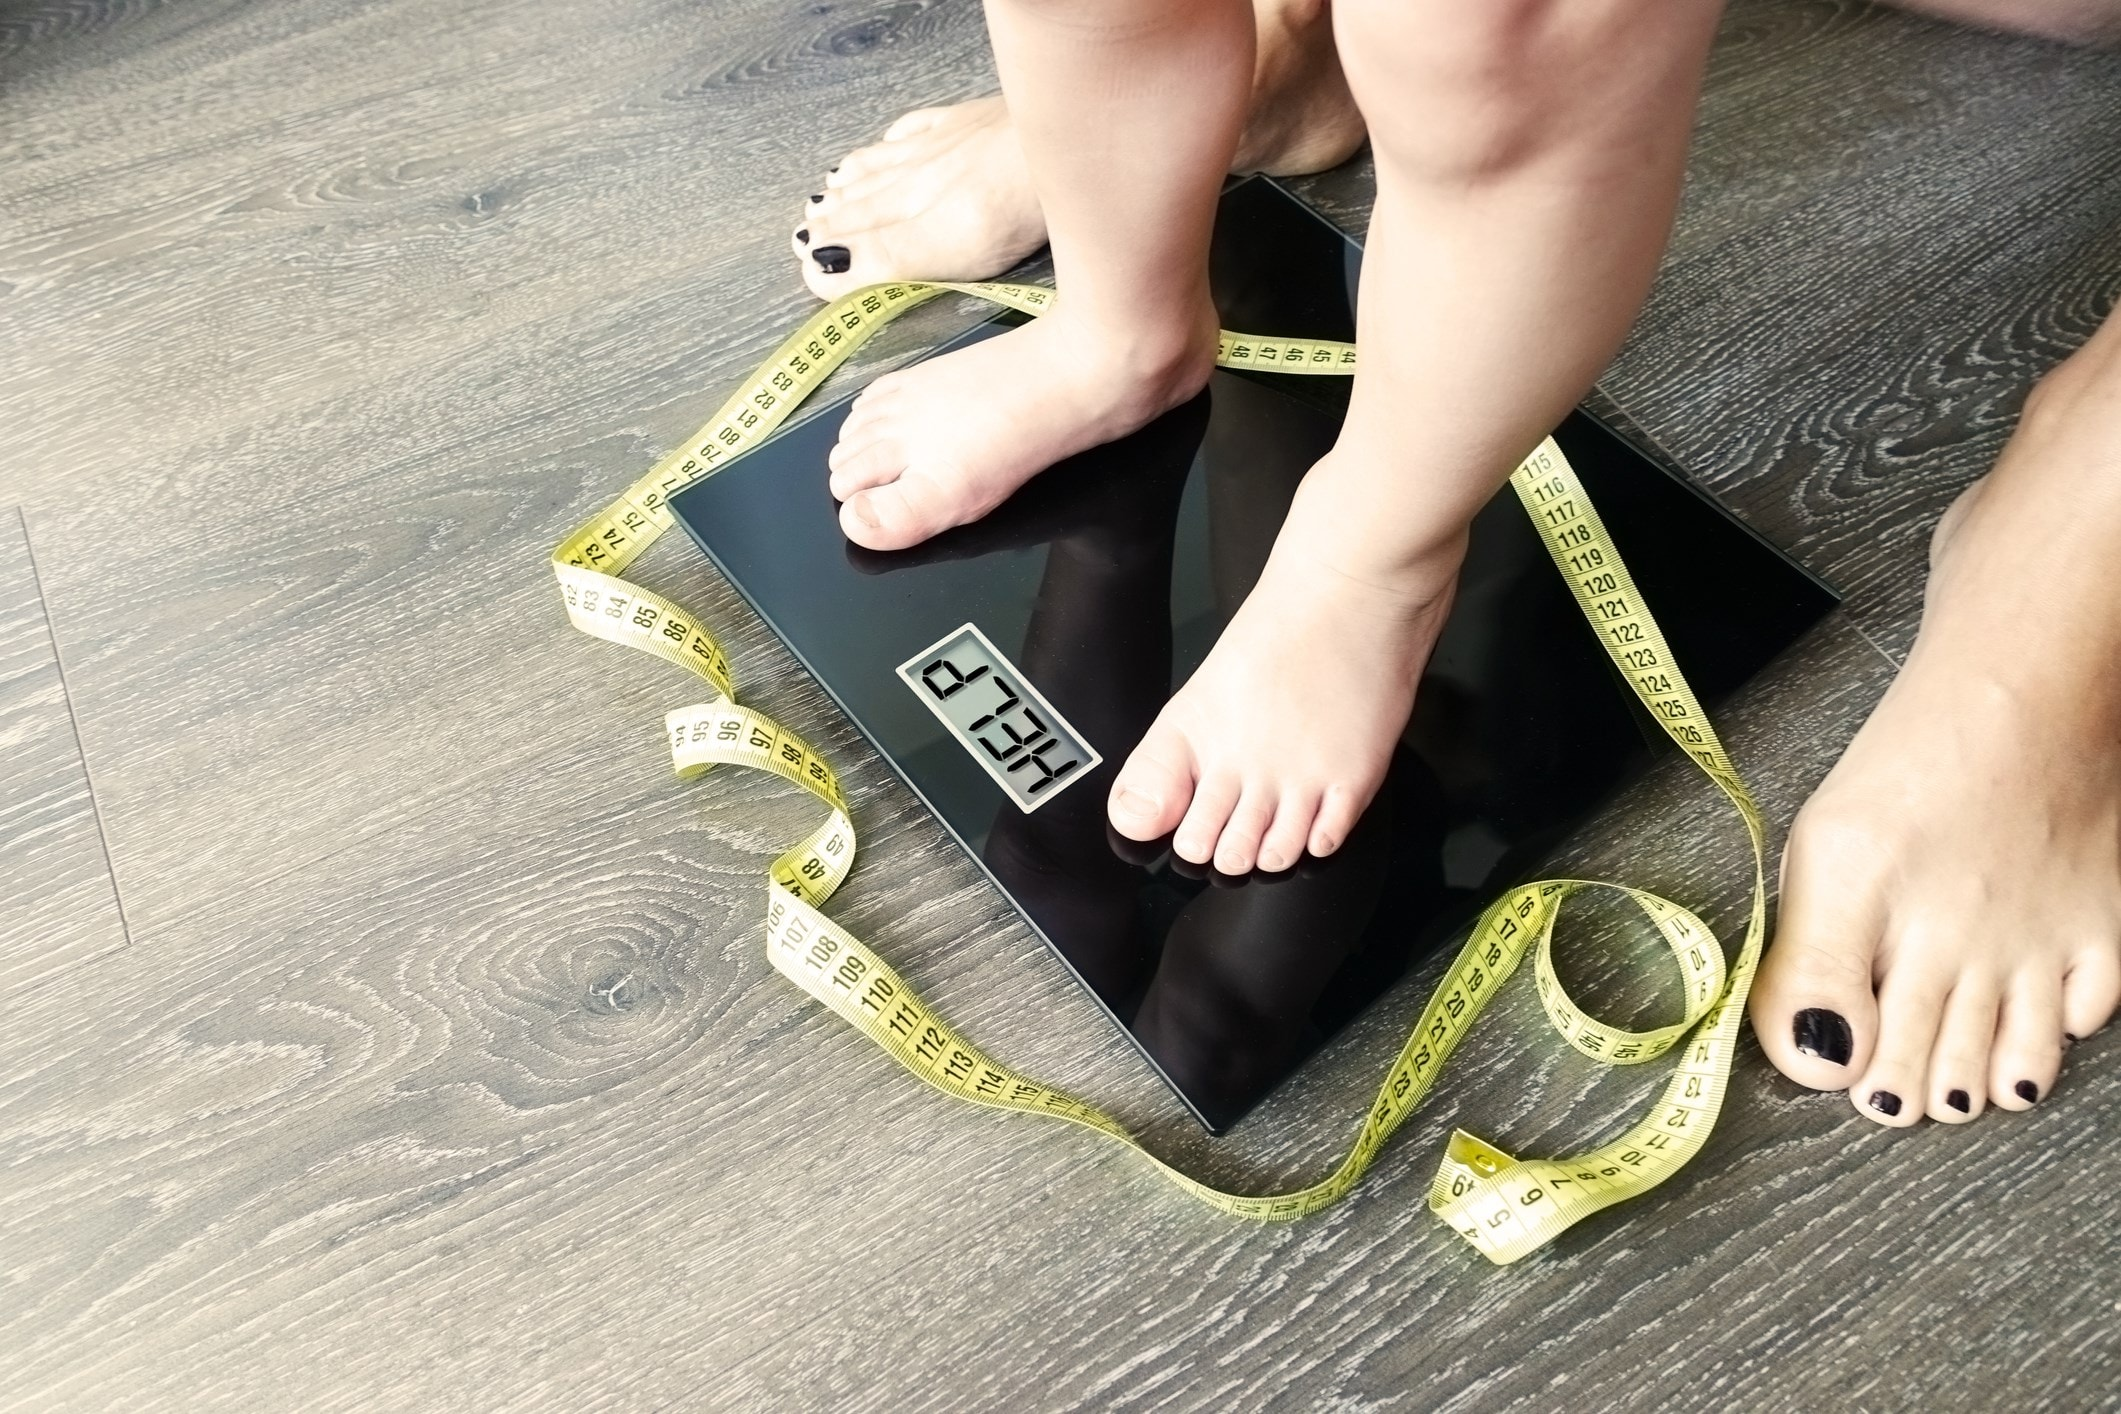 Weighing scales reading 'Help'